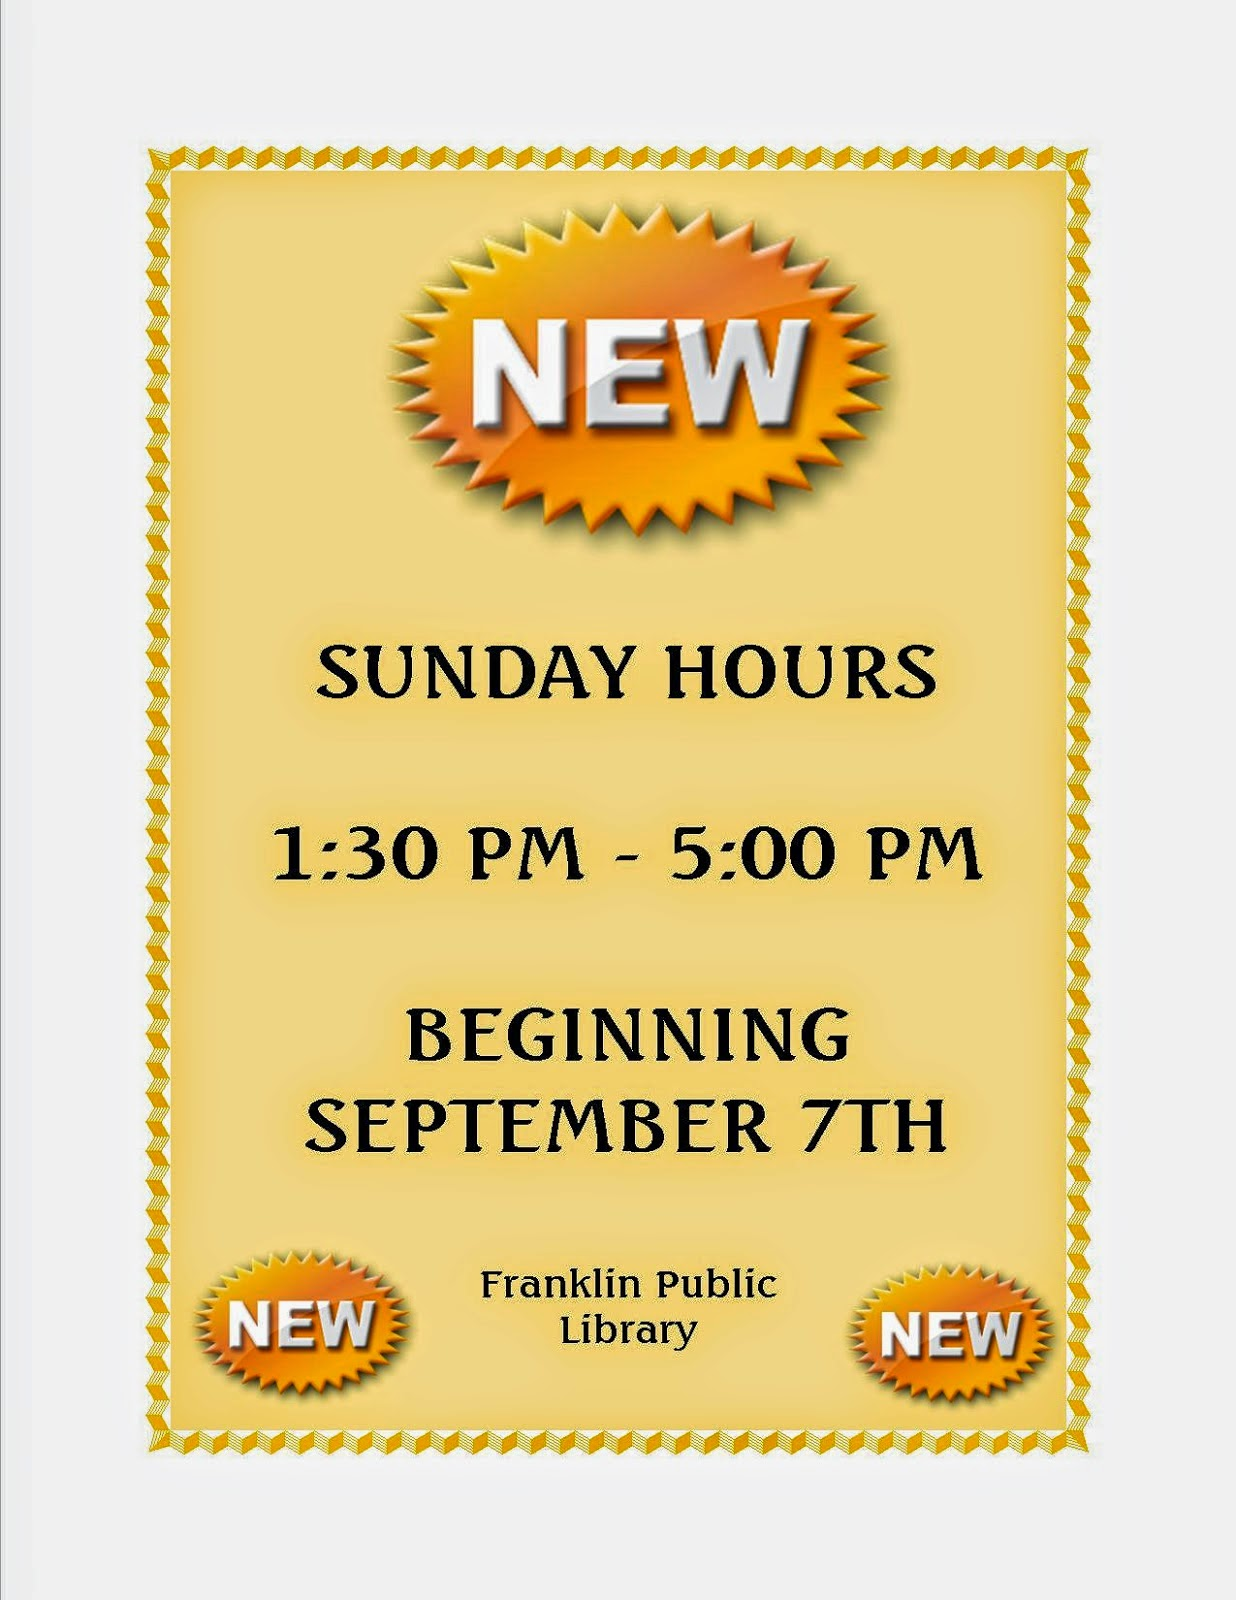 Franklin Library: Sunday hours - 1:30 PM to 5:00 PM